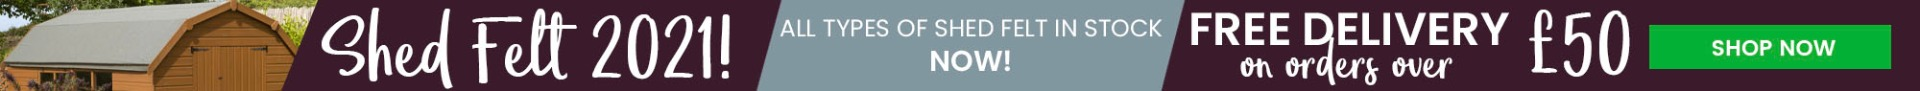 Shed Felt in Stock